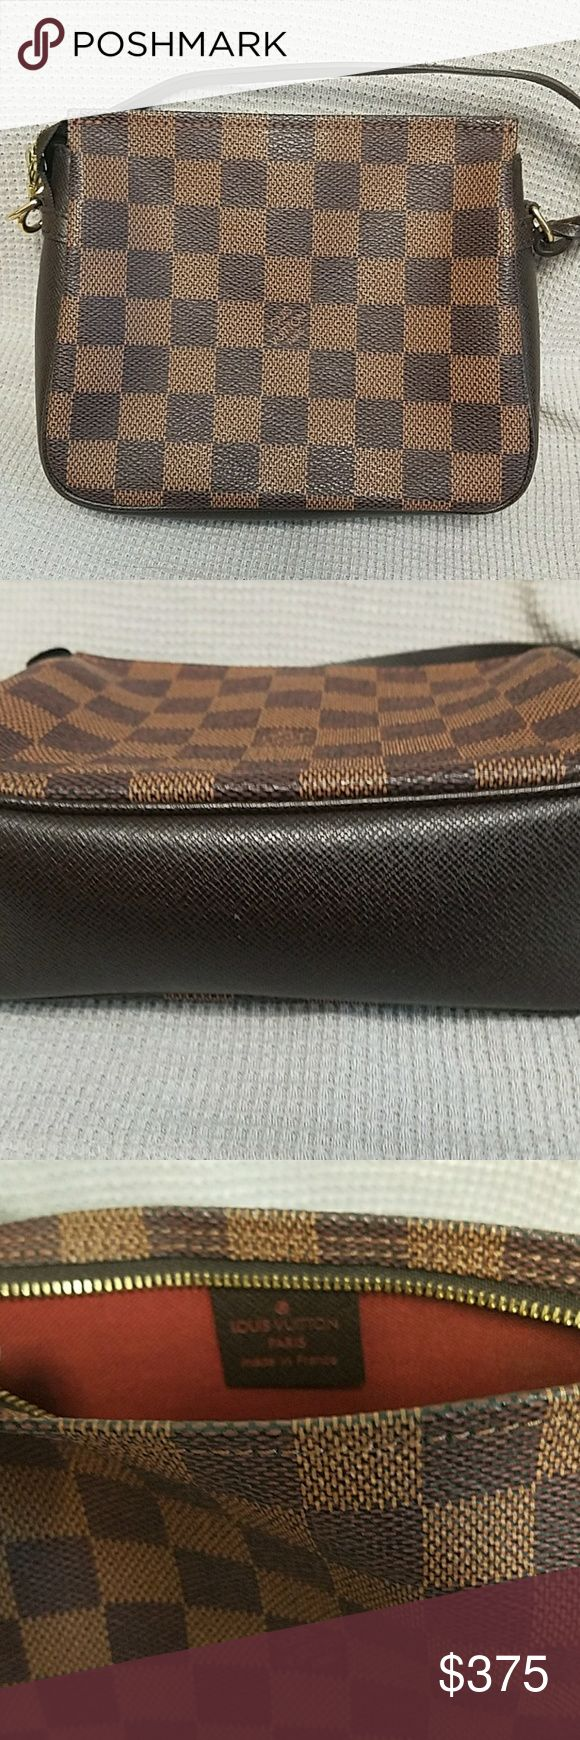 Damier Pochette Small bag gently used. It makes a great Christmas present. Louis Vuitton Bags Clutches & Wristlets